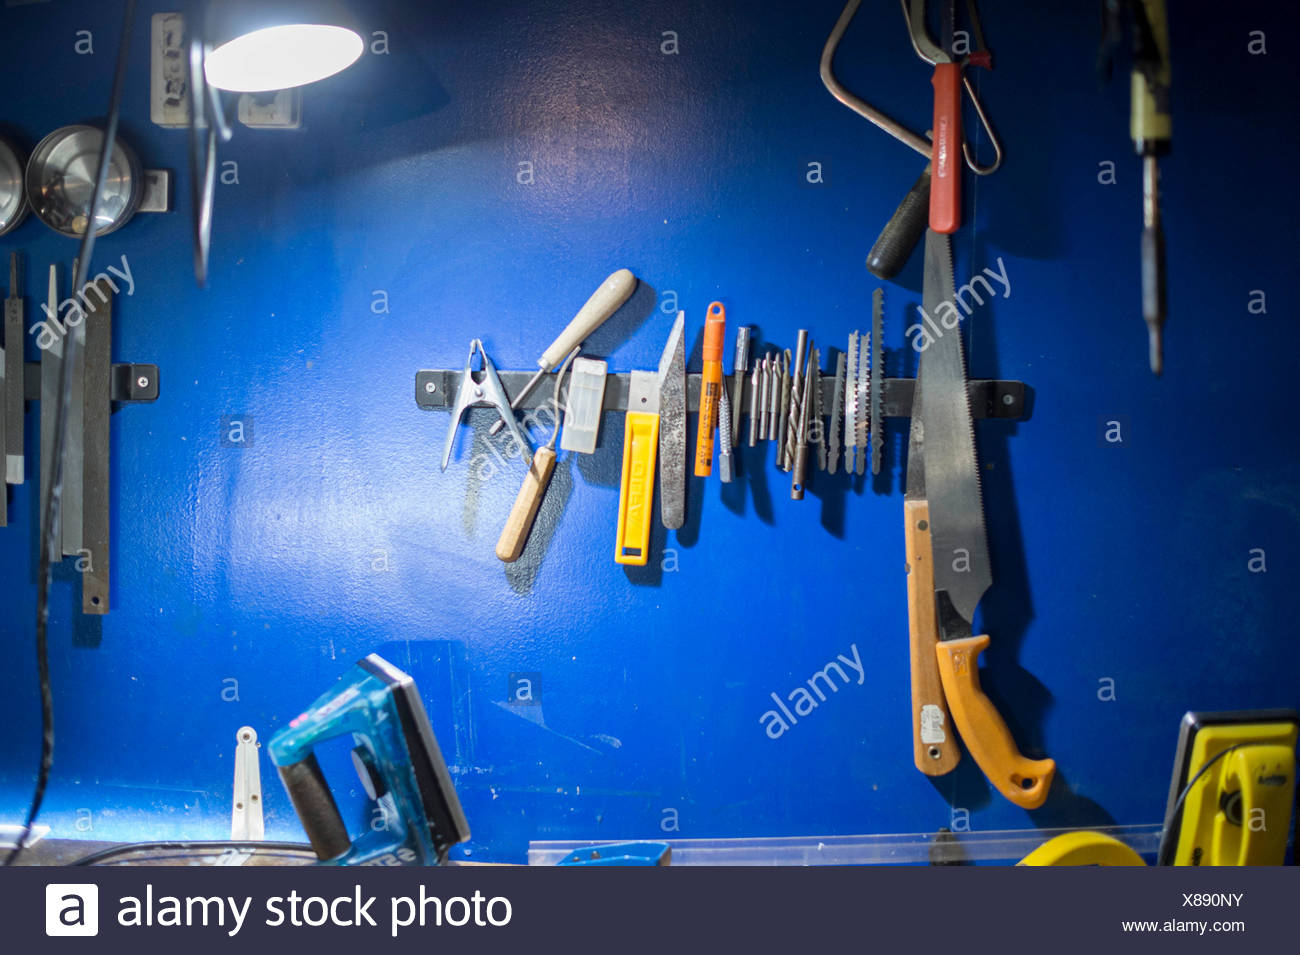 Repairing Tools For Snowboard In Workshop - Stock Image